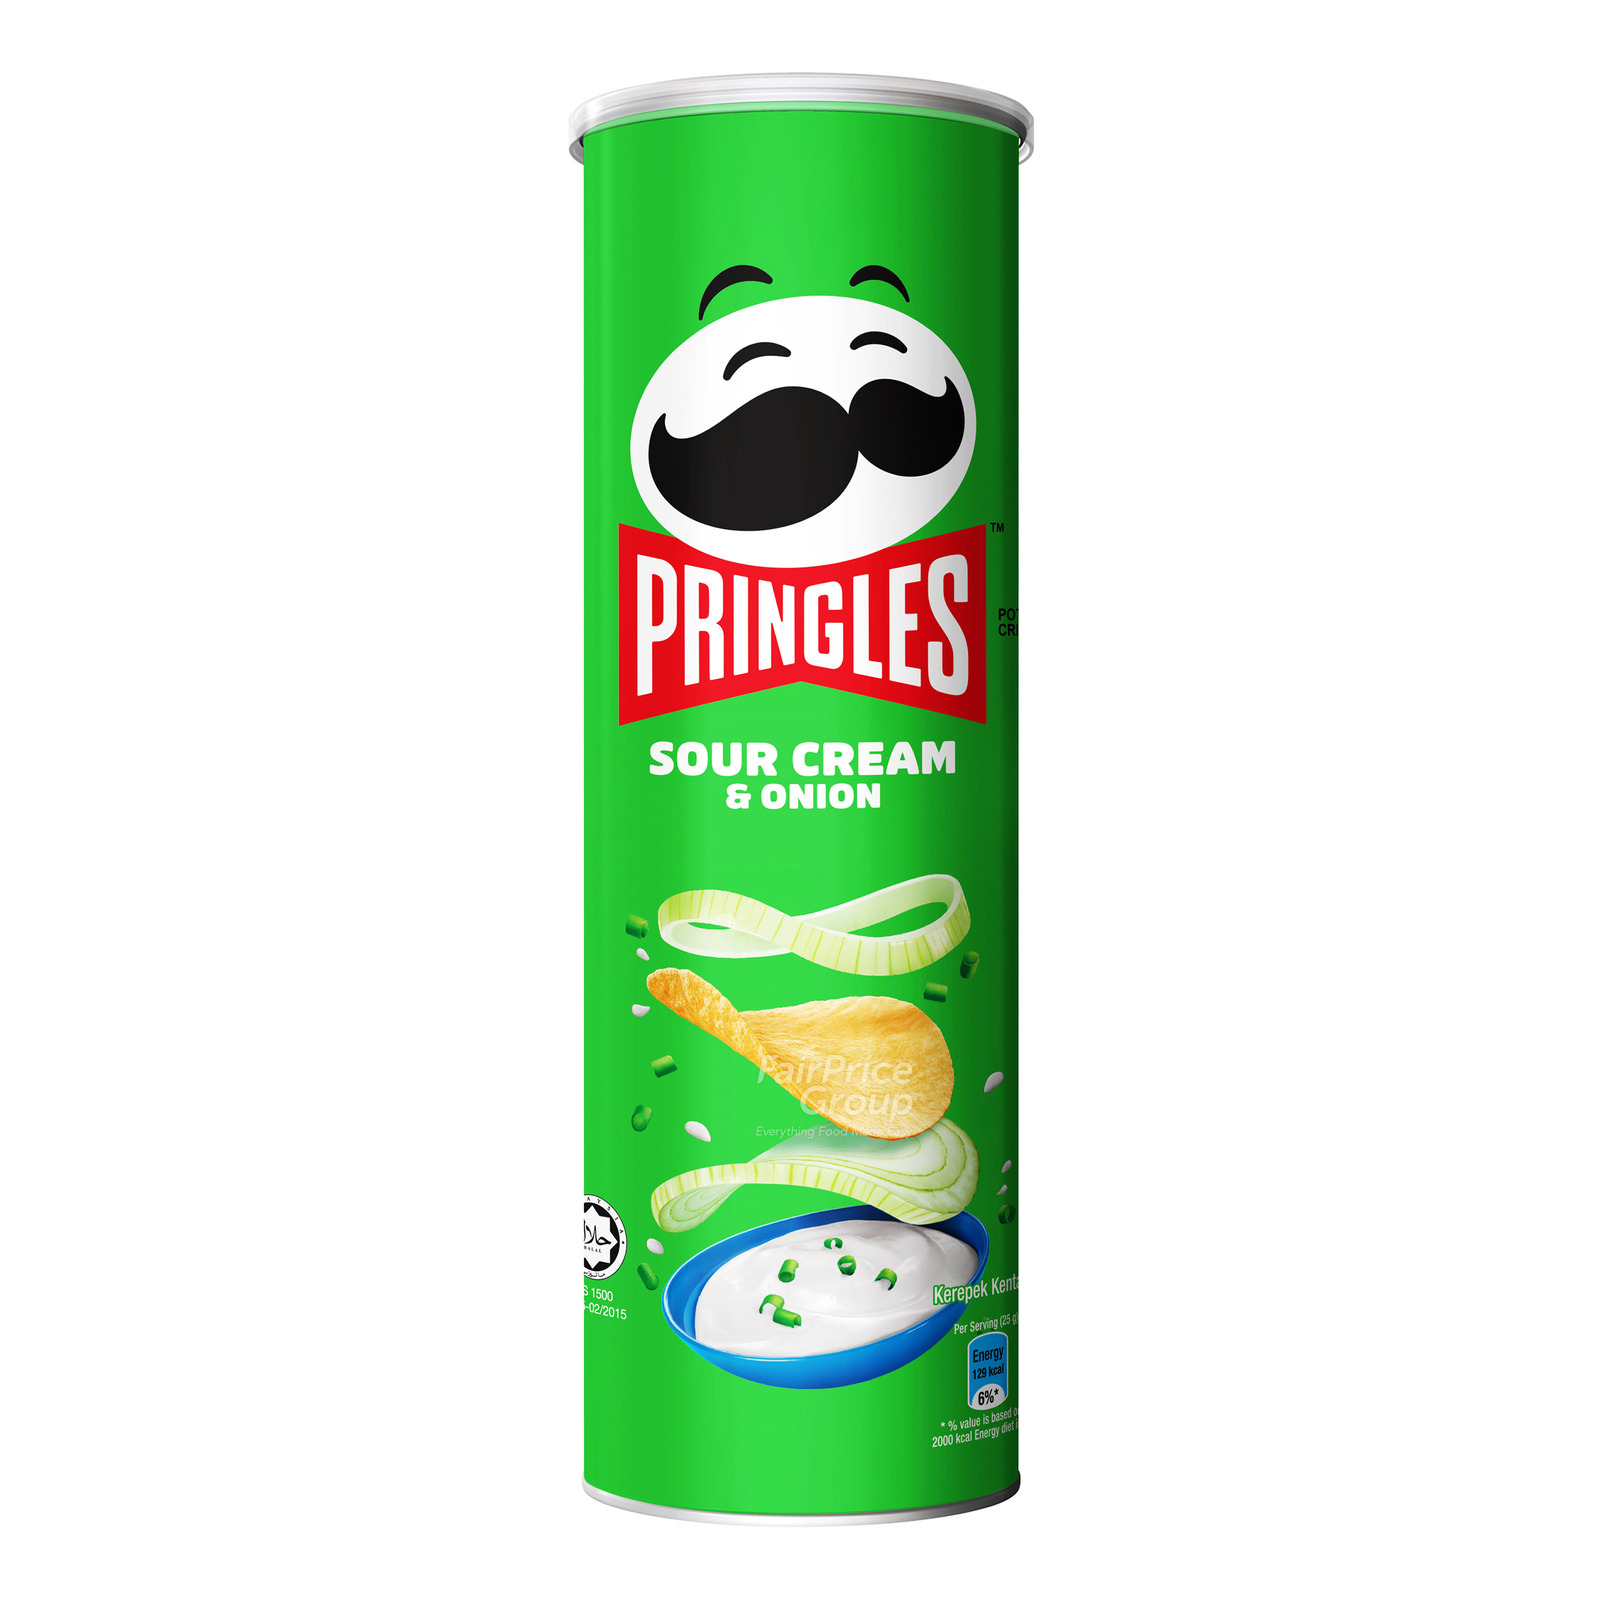 Pringles Potato Crisps - Sour Cream & Onion